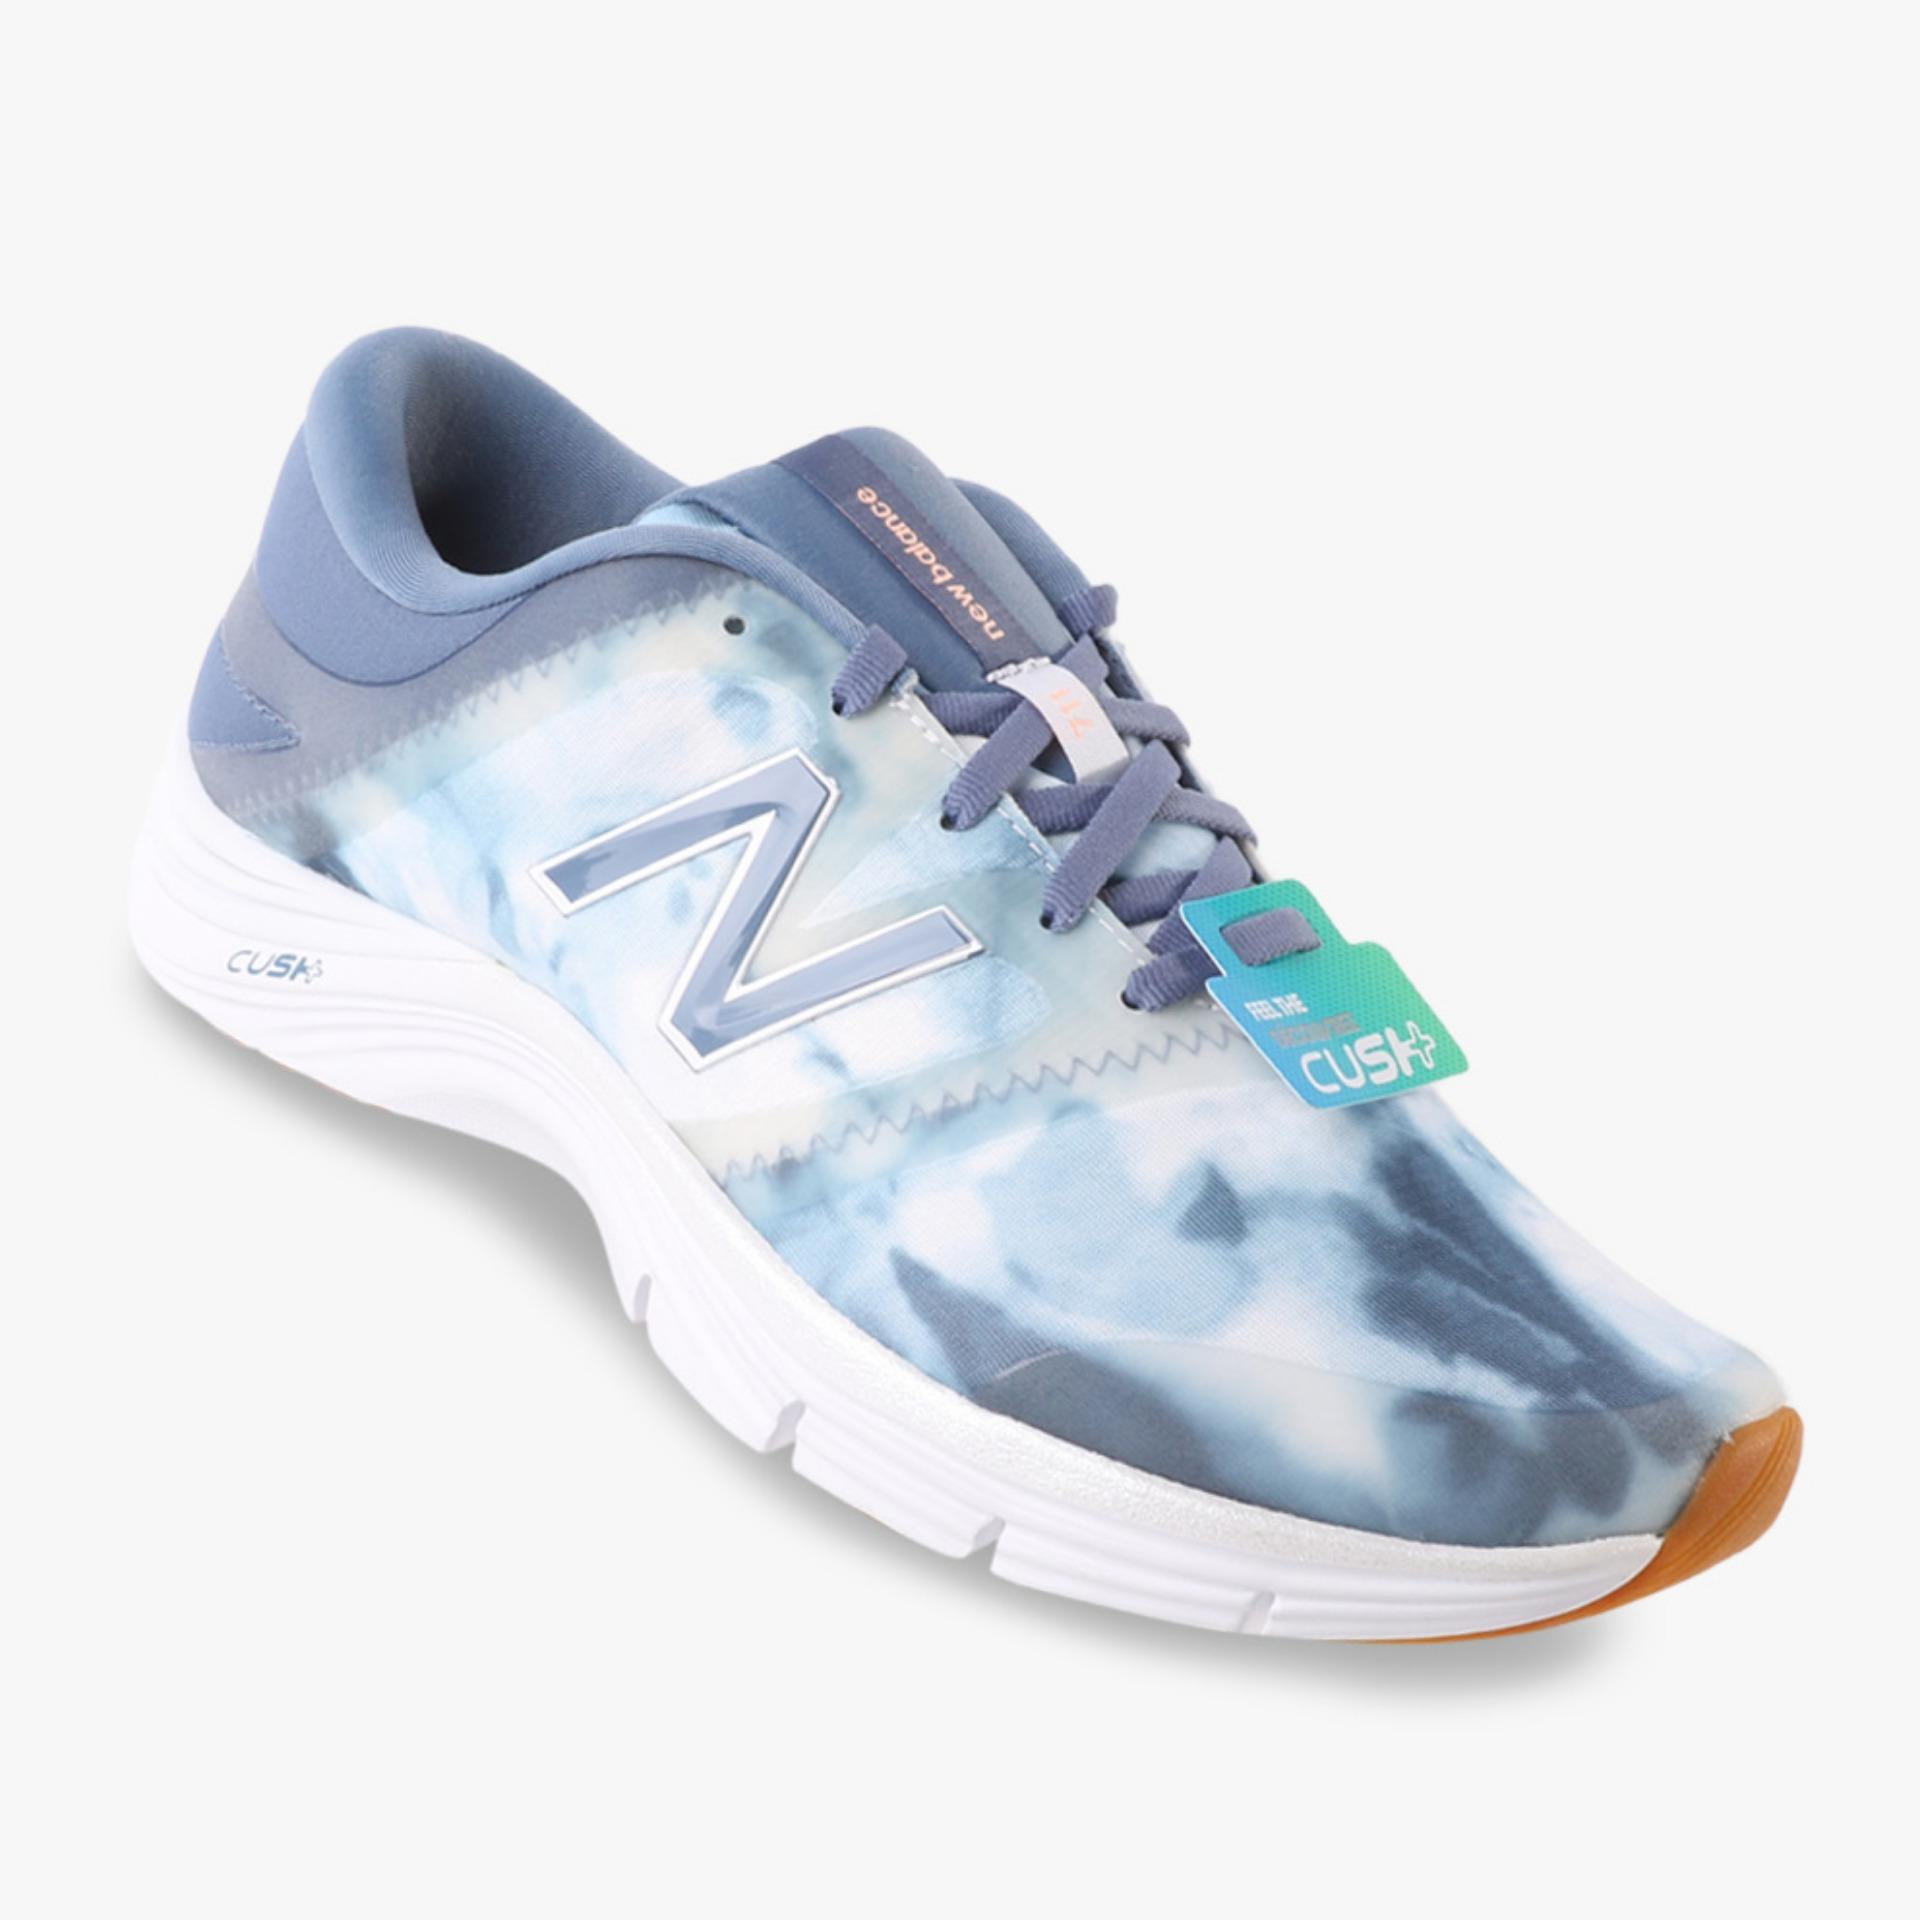 Spesifikasi New Balance Graphic Pack Women S Training Shoes Biru Merk New Balance